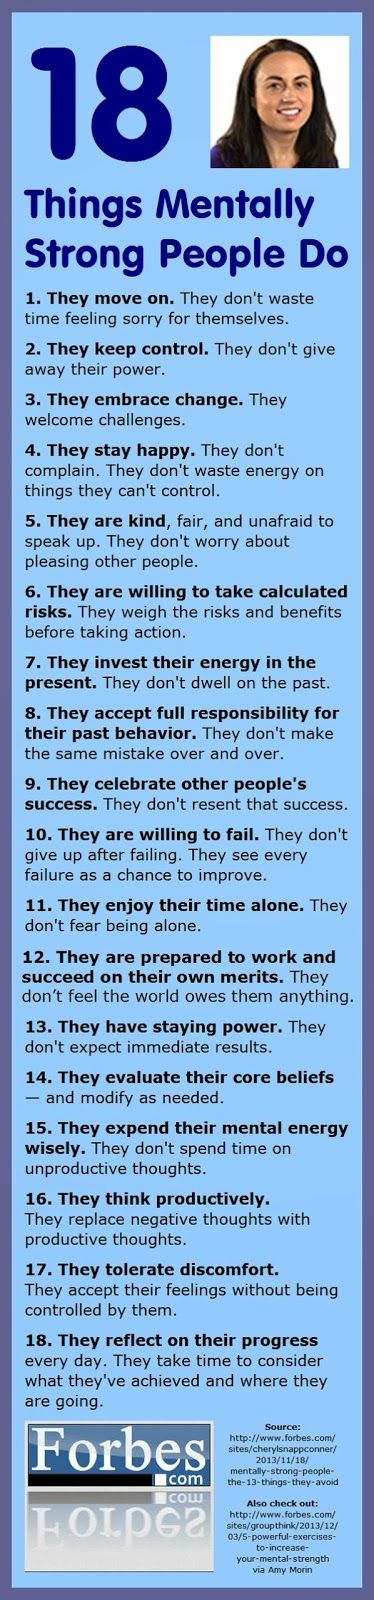 Celebrity Quotes: 18 things mentally strong people do